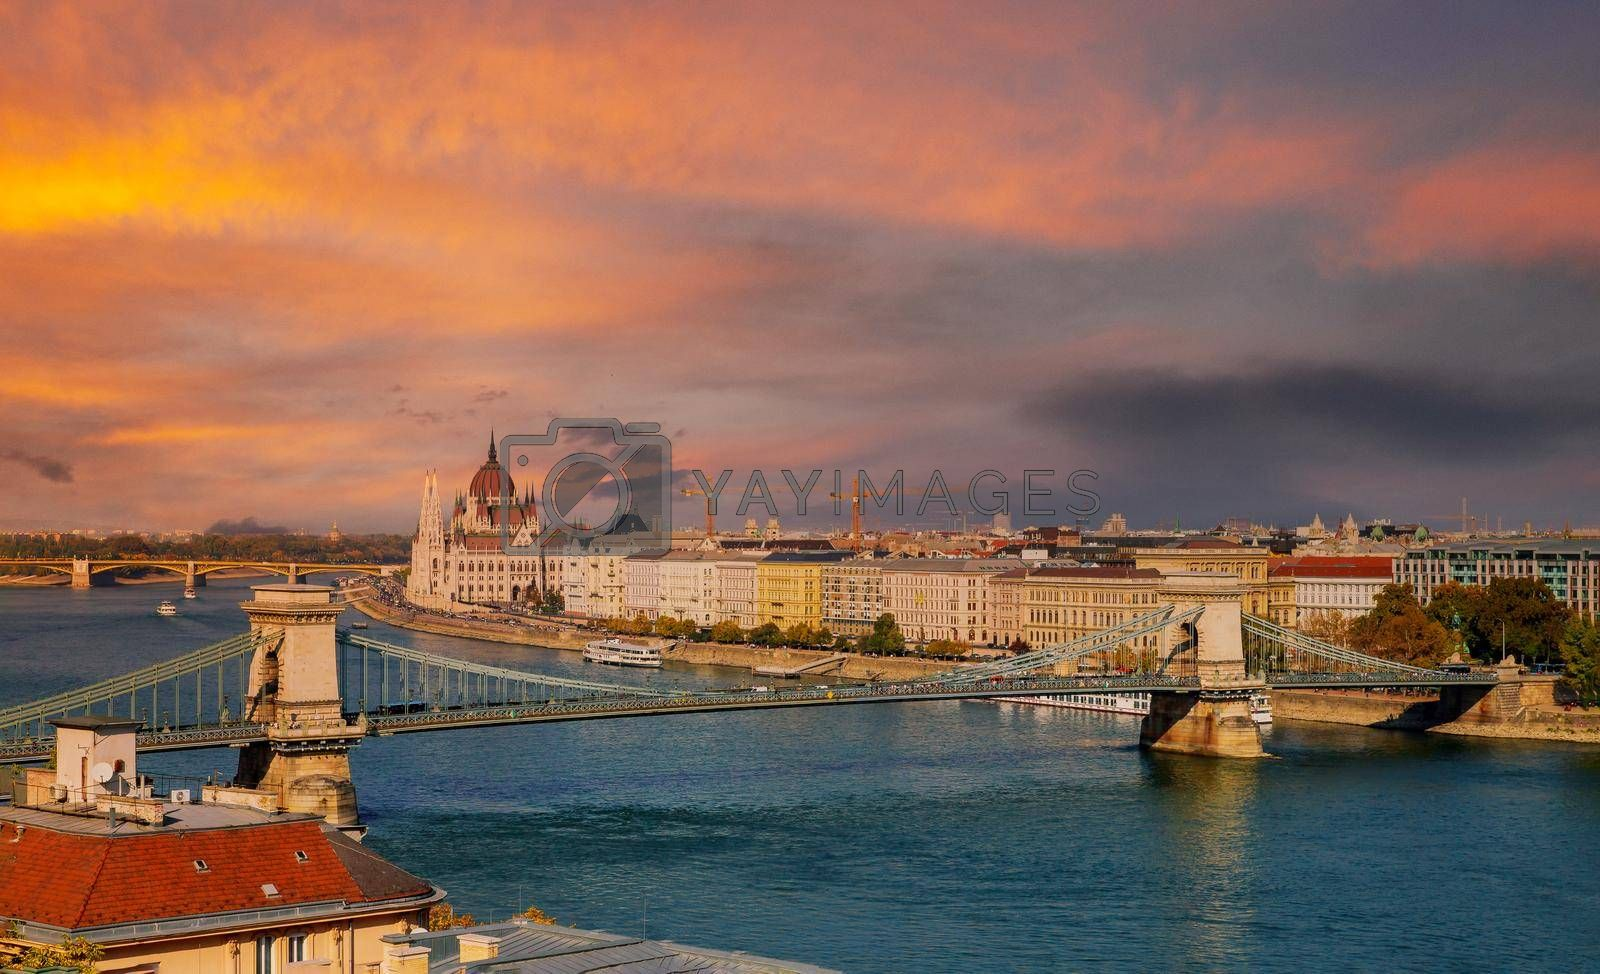 Panoramic sunset view with Chain bridge on river Danube in Budapest parliament building capital of Hungary